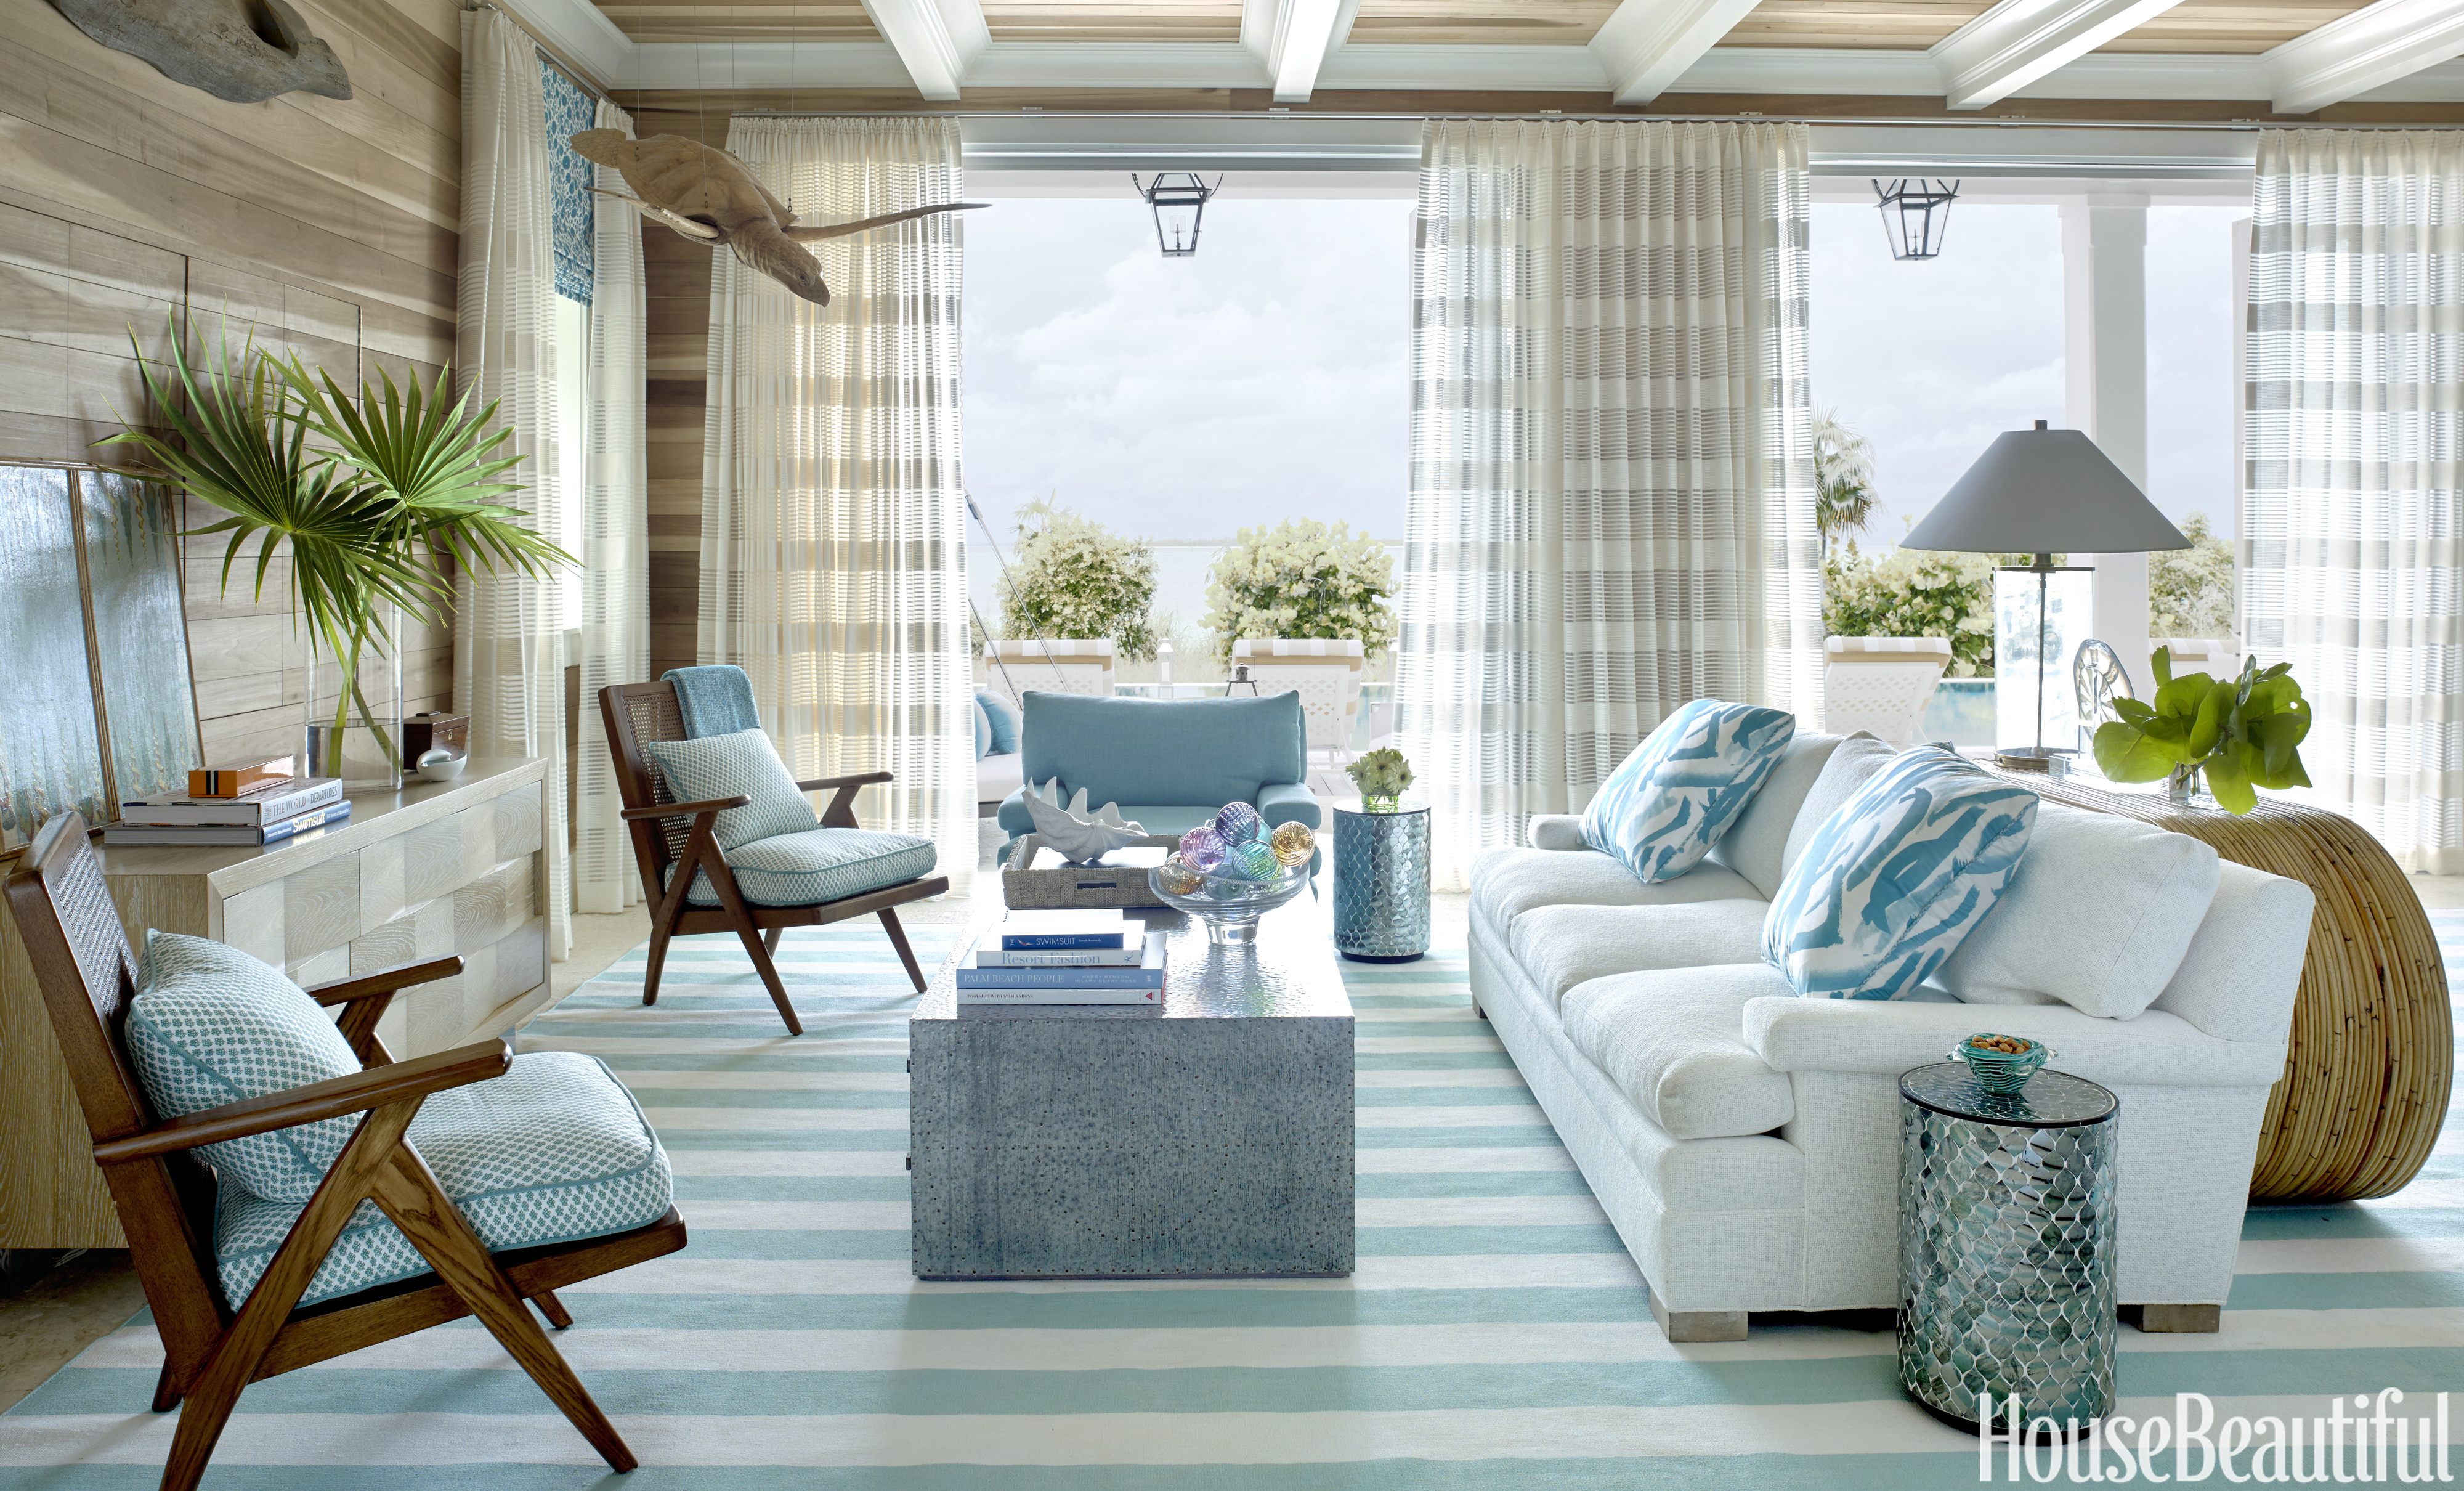 photos of living room designs turquoise house marshall watson and kate 23171